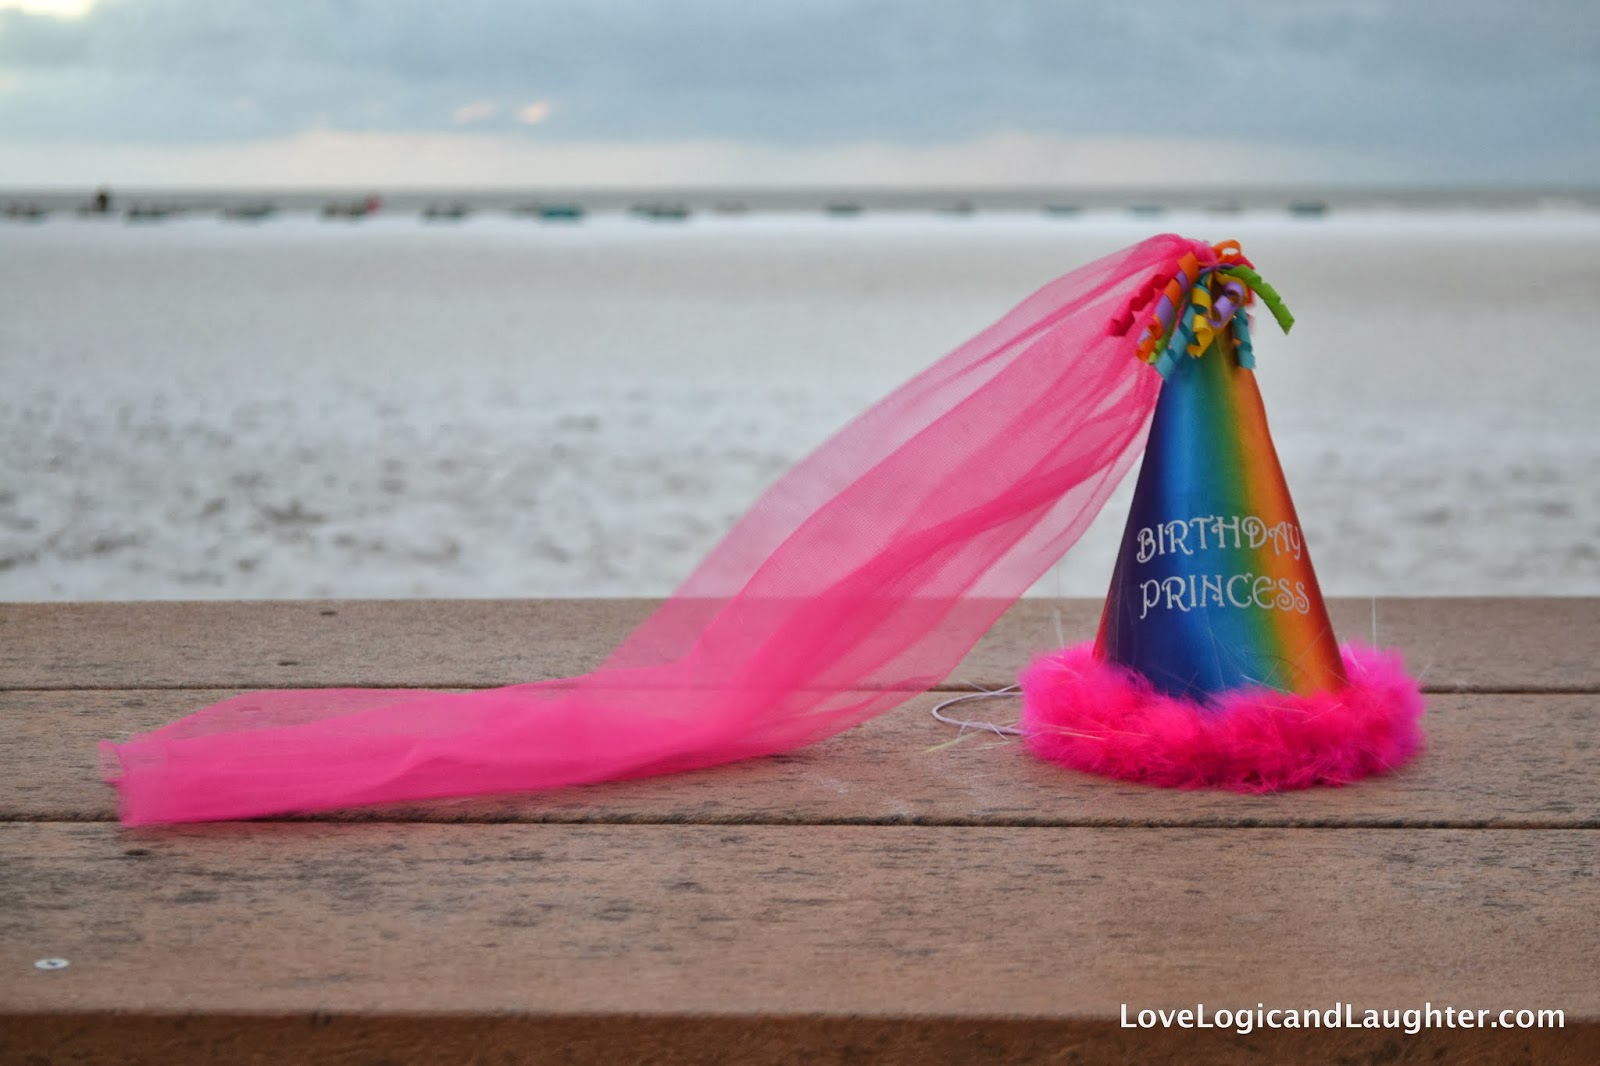 Eliana Is Very Much Into Princesses And Dress Up So We Combined The Beach With Her Love Of For A Birthday Princess Party